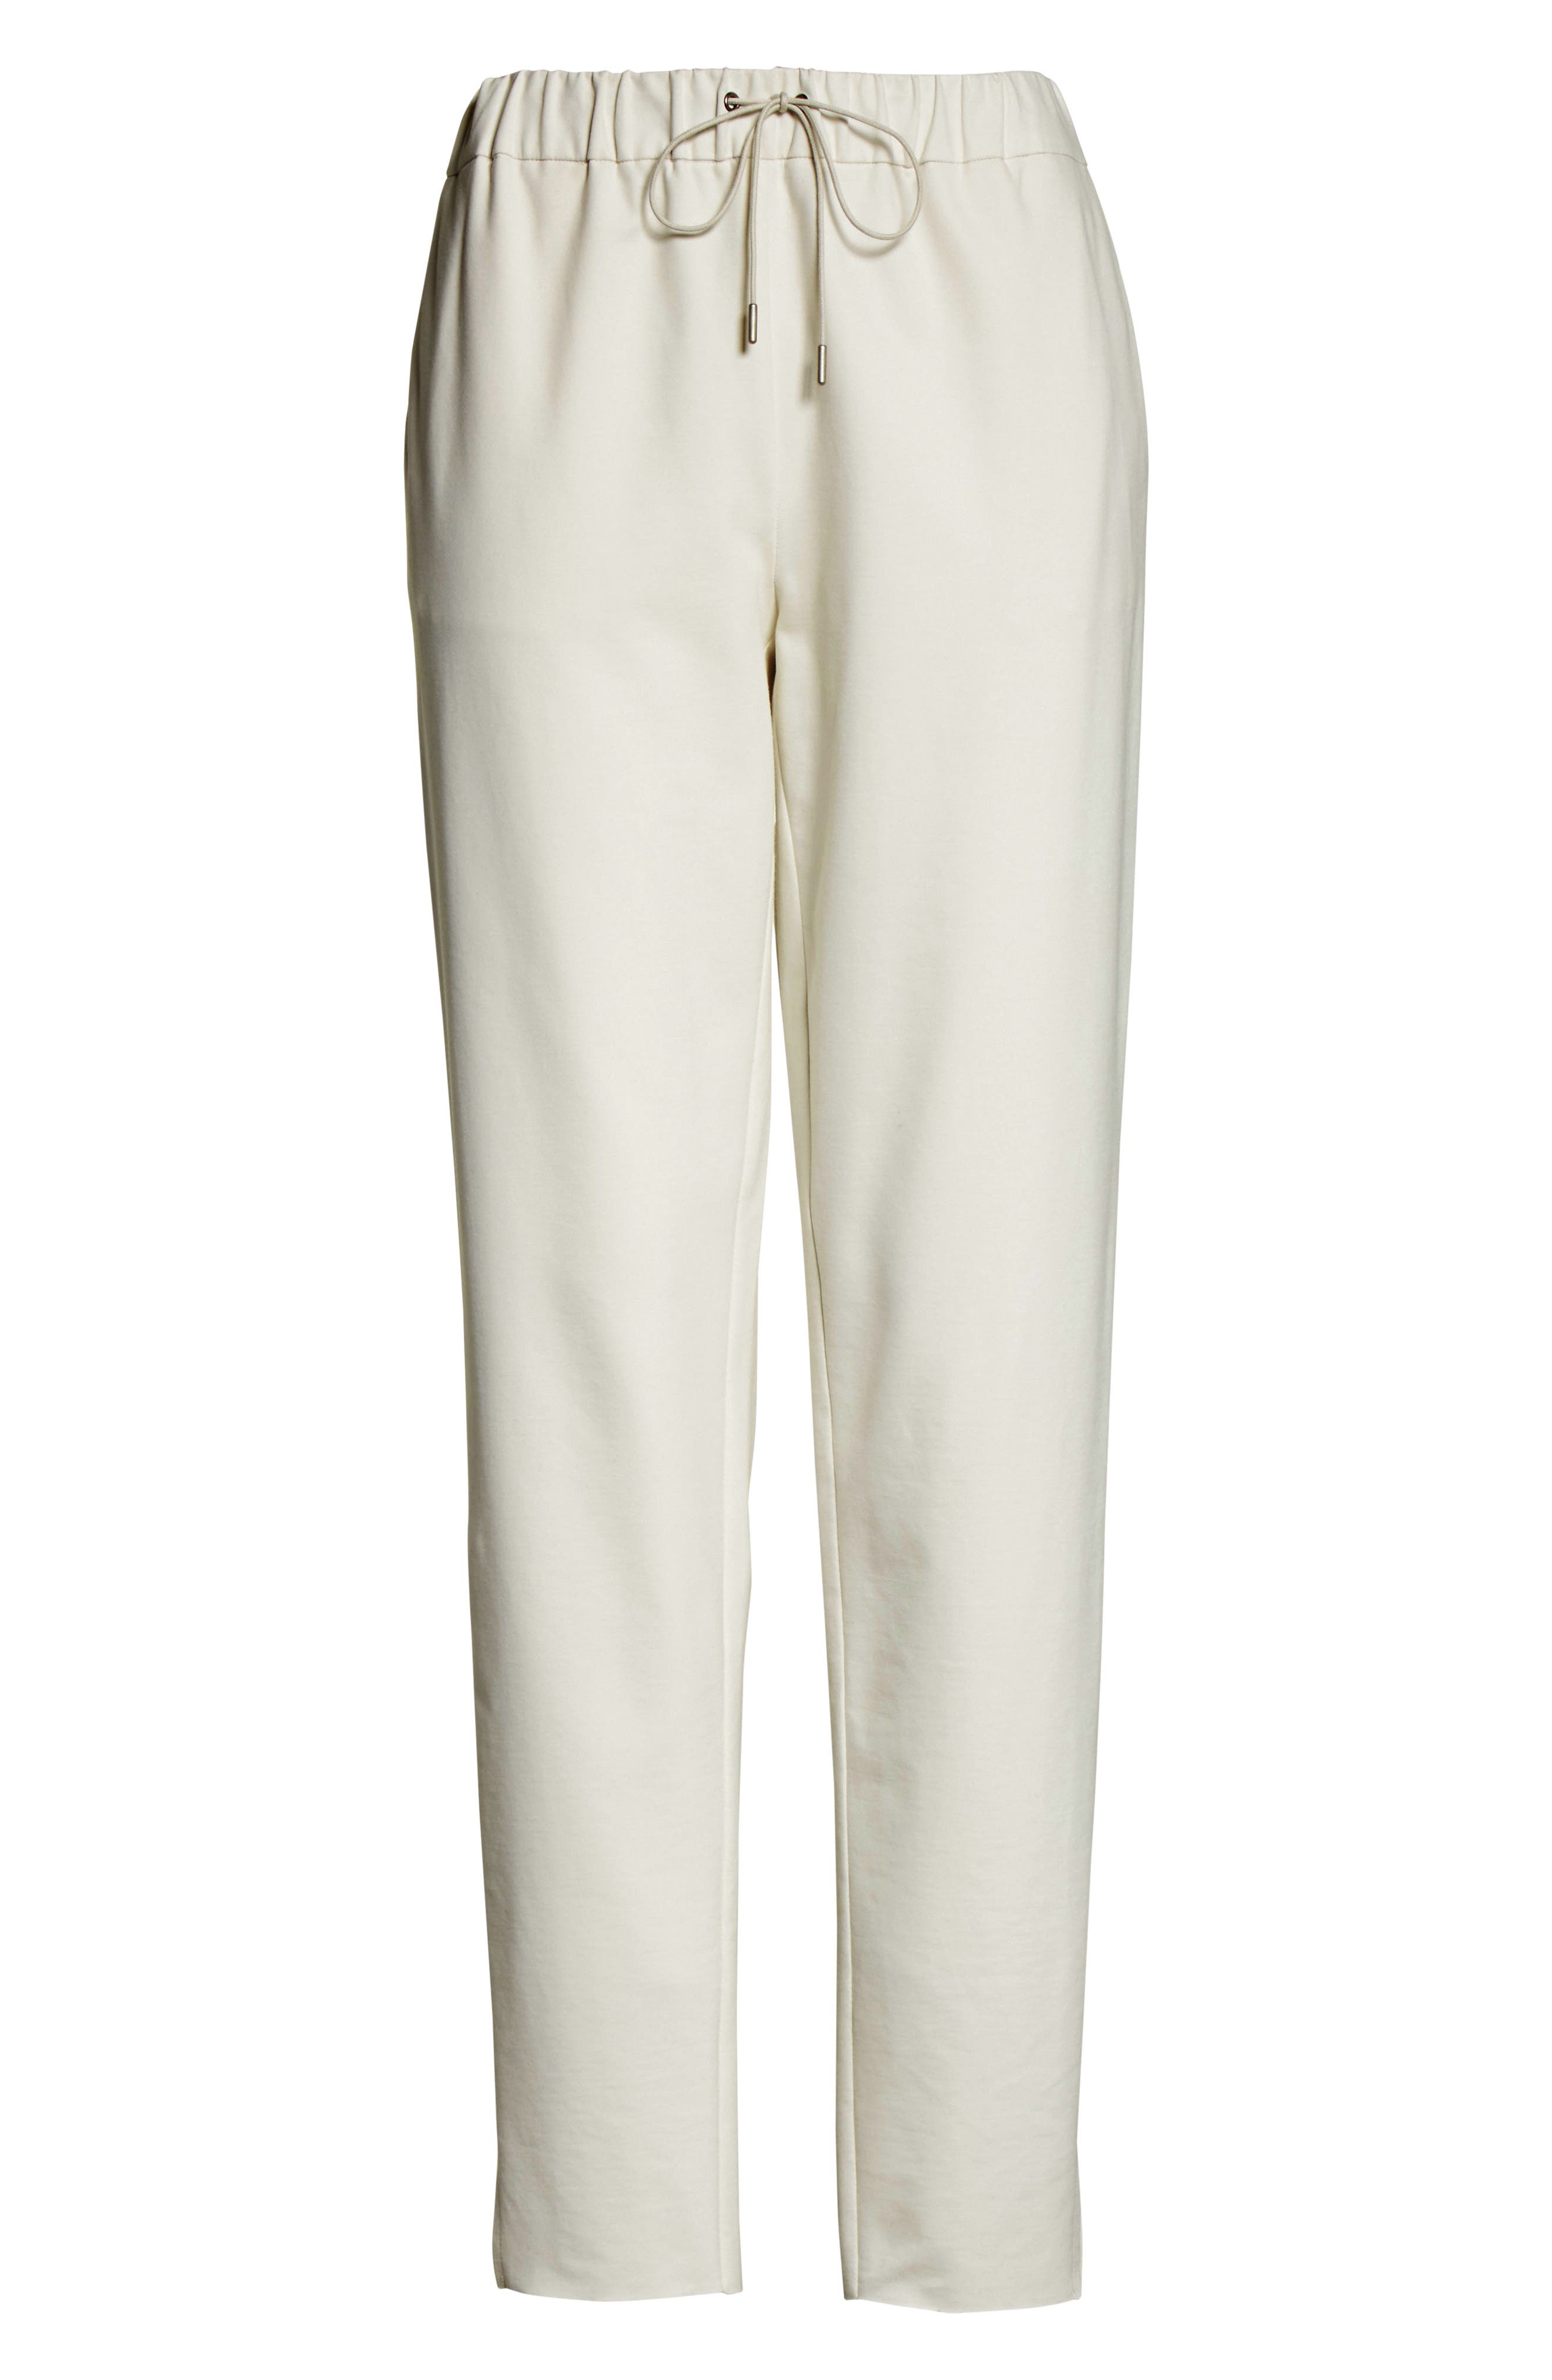 Rodier Jersey Joggers,                             Alternate thumbnail 11, color,                             Ivory